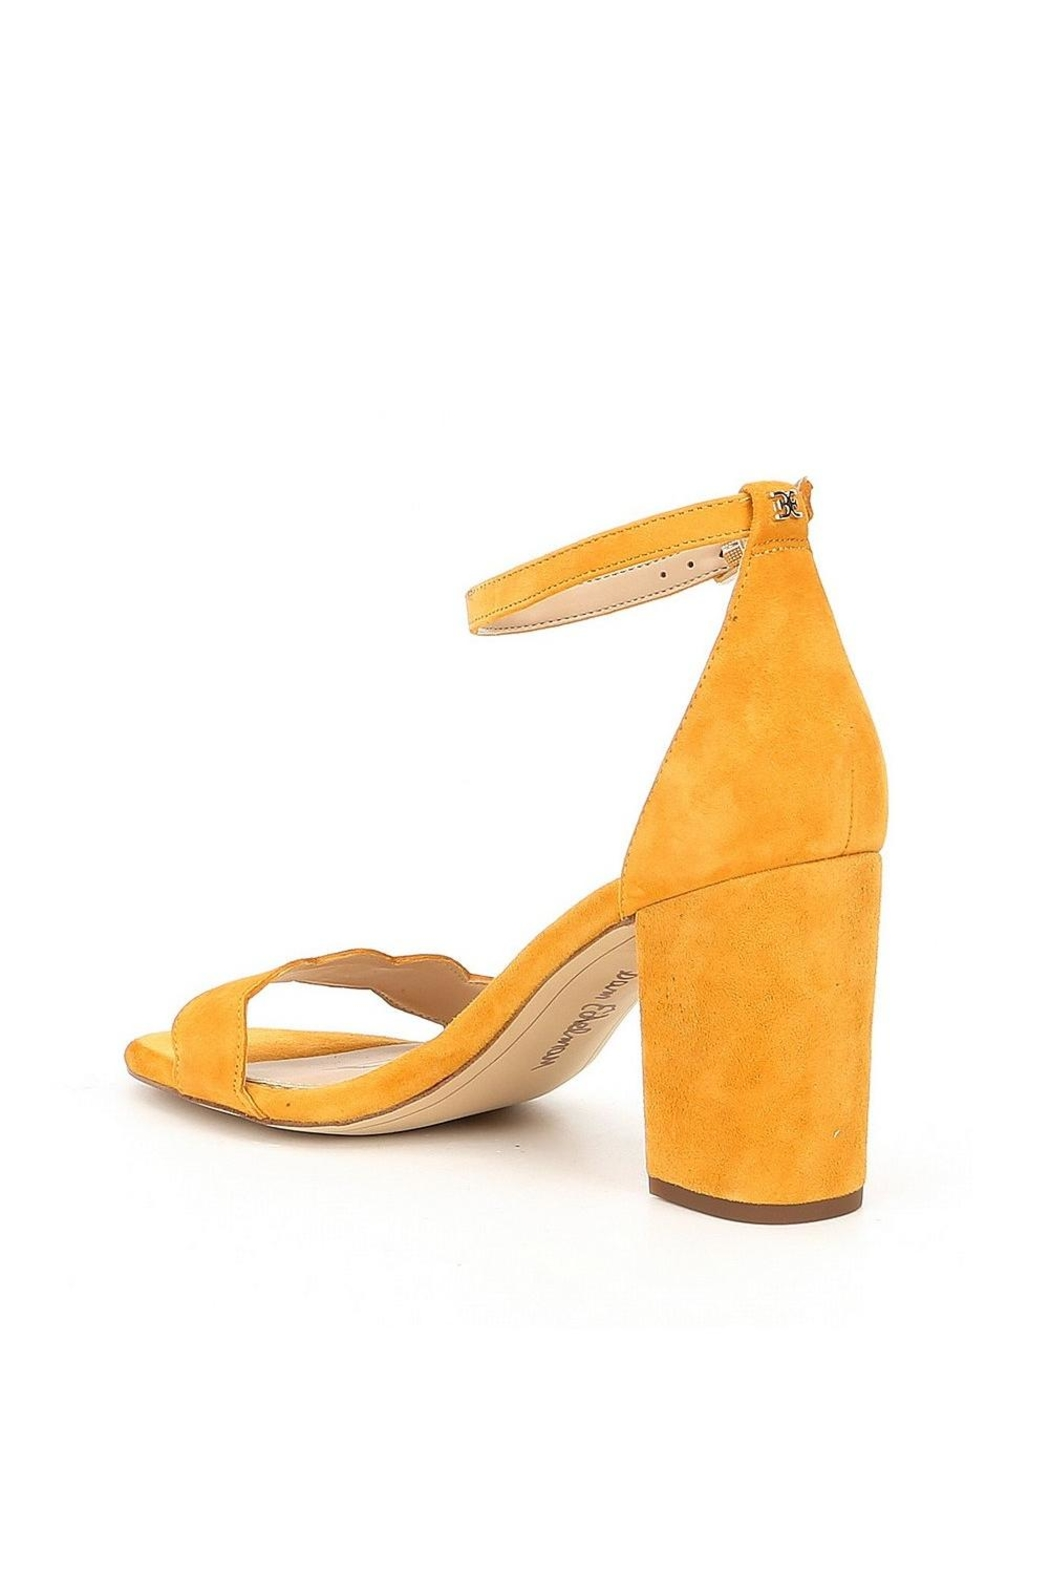 Sam Edelman Odila - Side Cropped Image